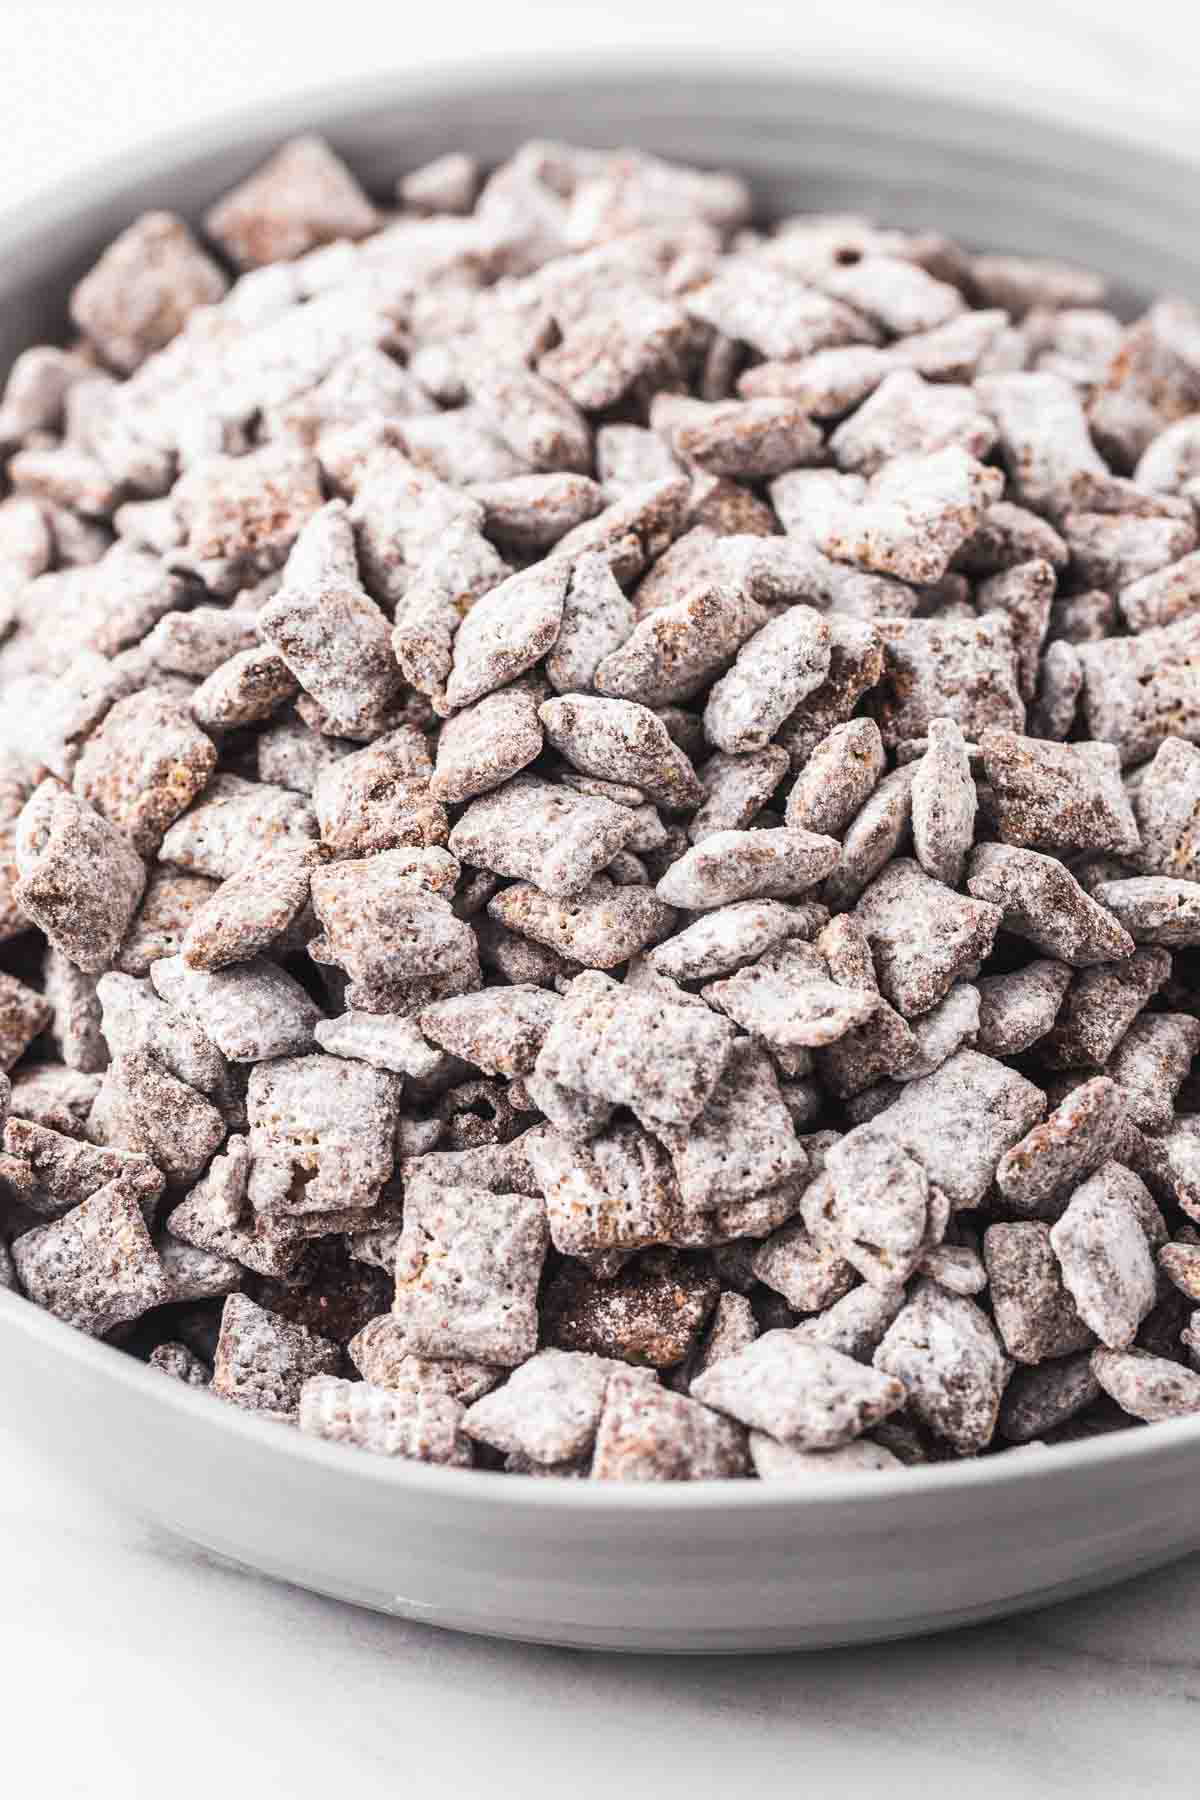 Puppy chow served in a large gray bowl